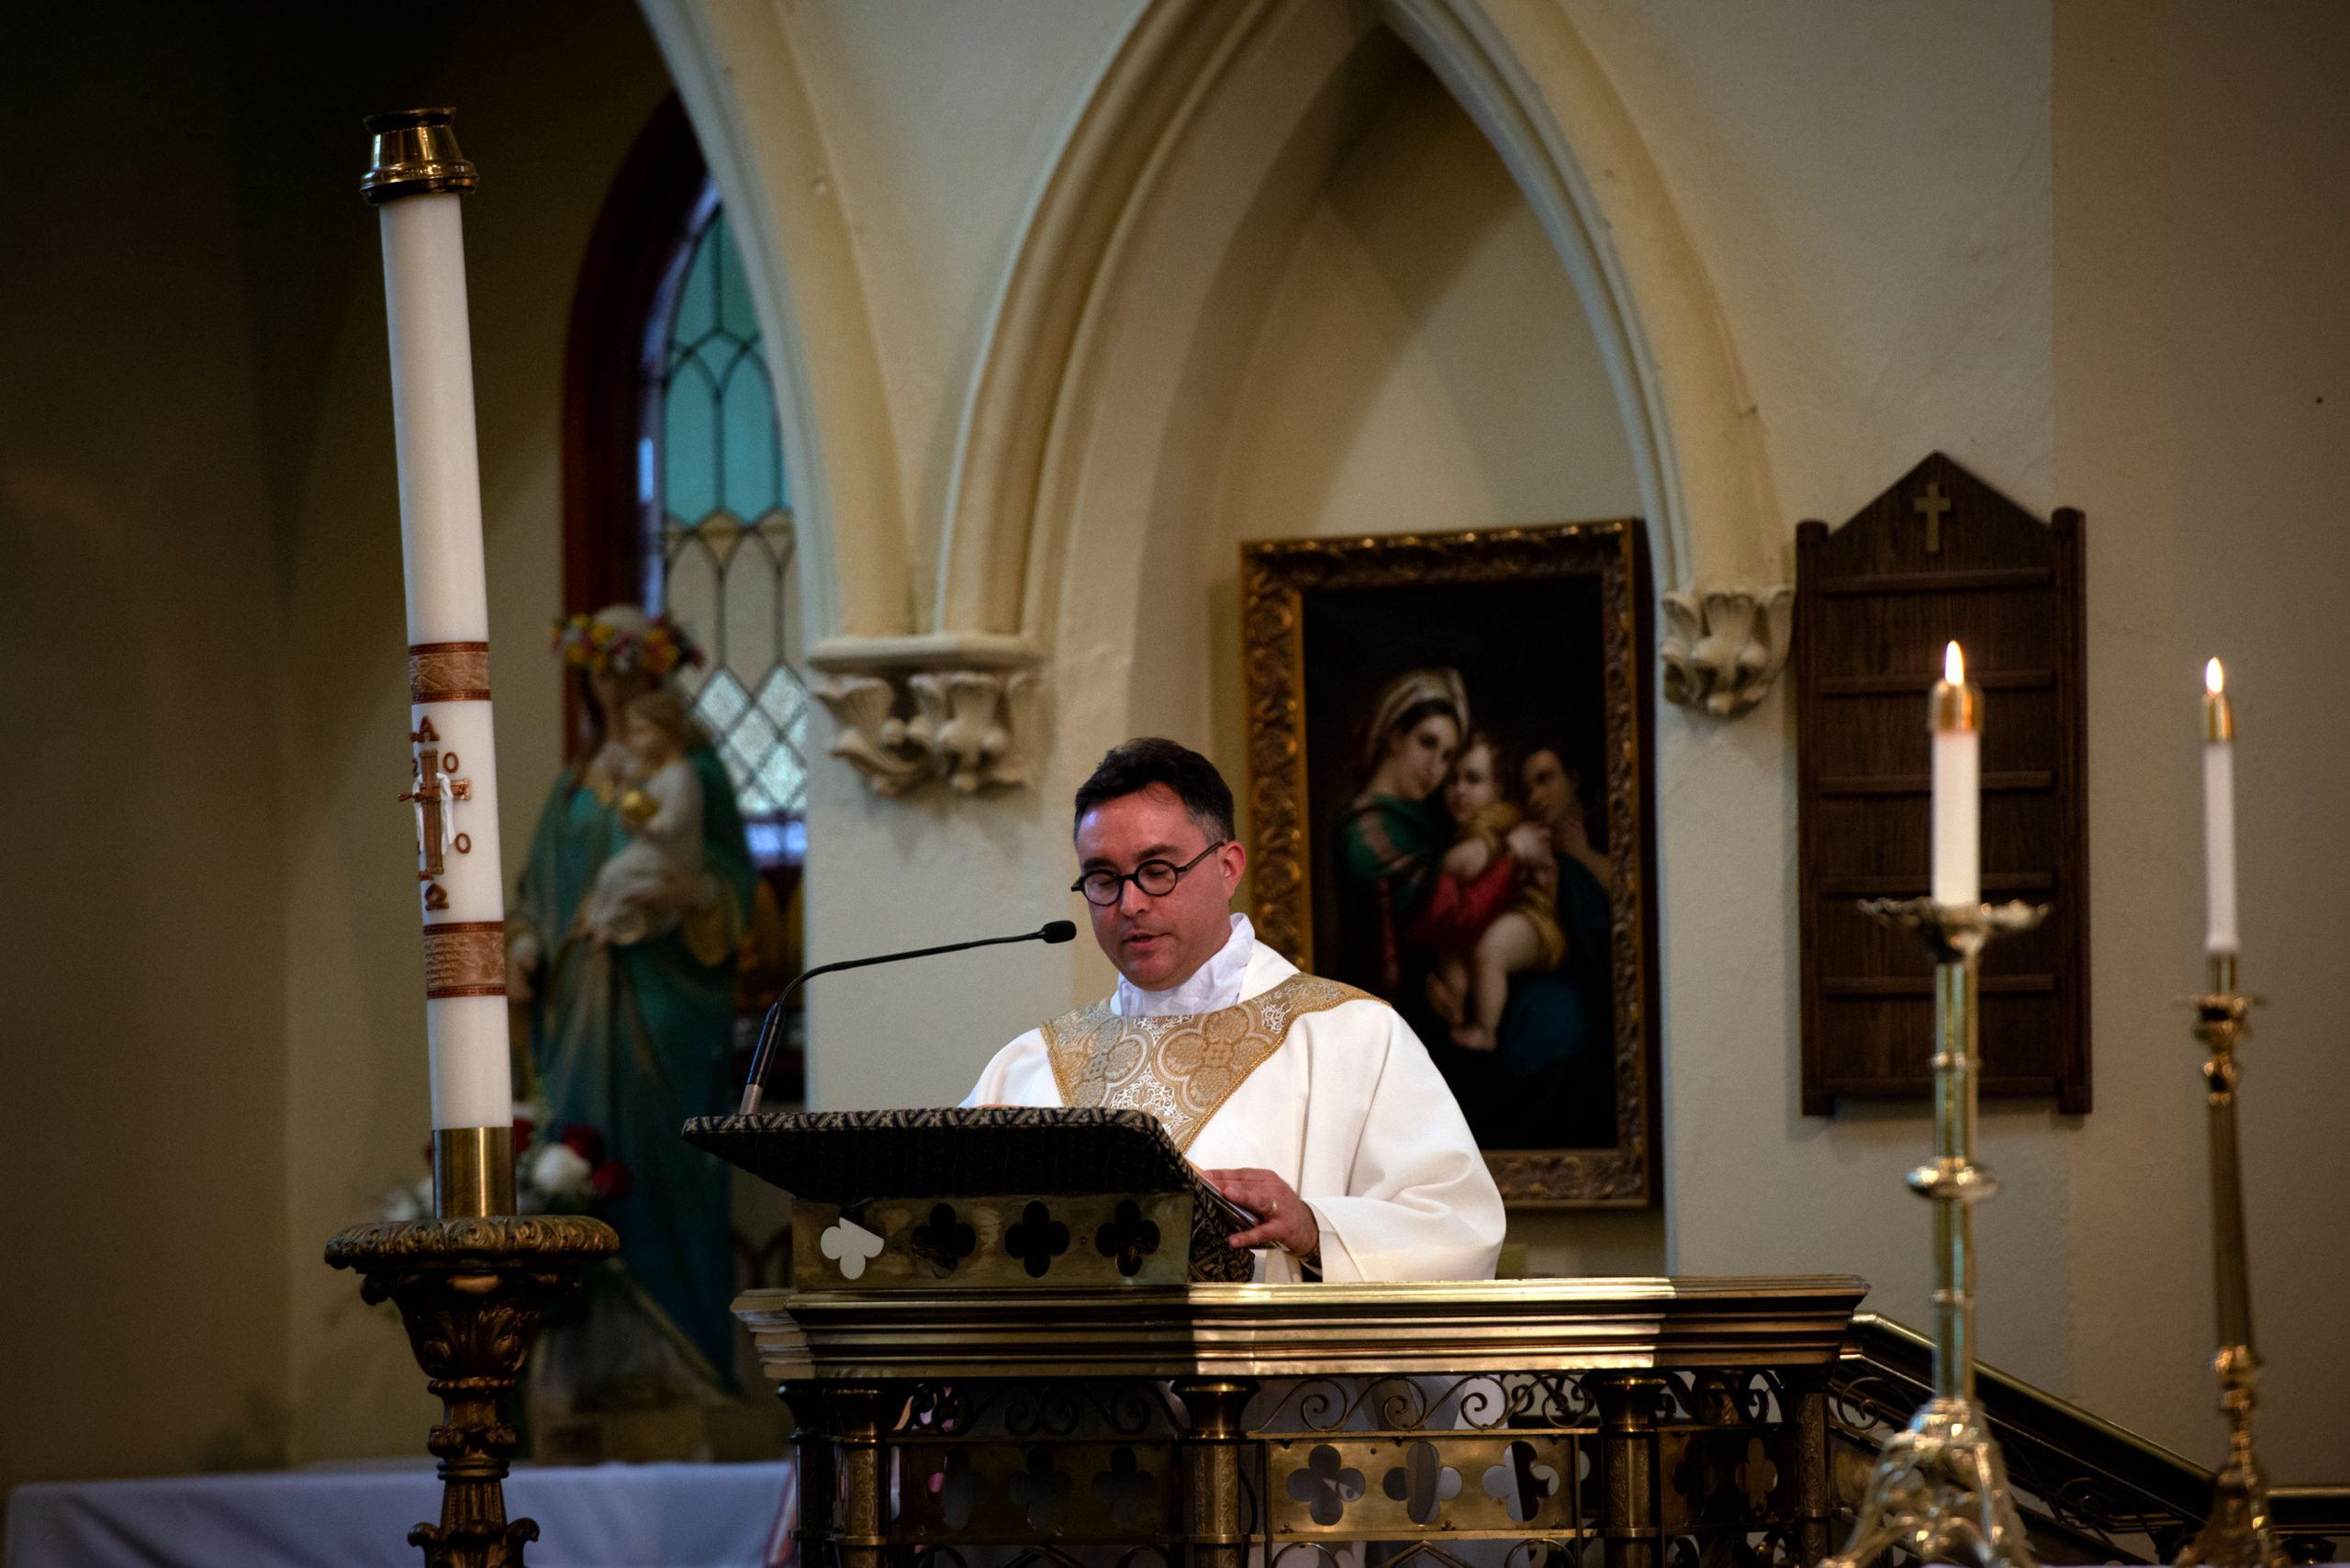 Father Matthew Jones welcomes Father Martuscello's family and friends at the start of the ordination Mass.